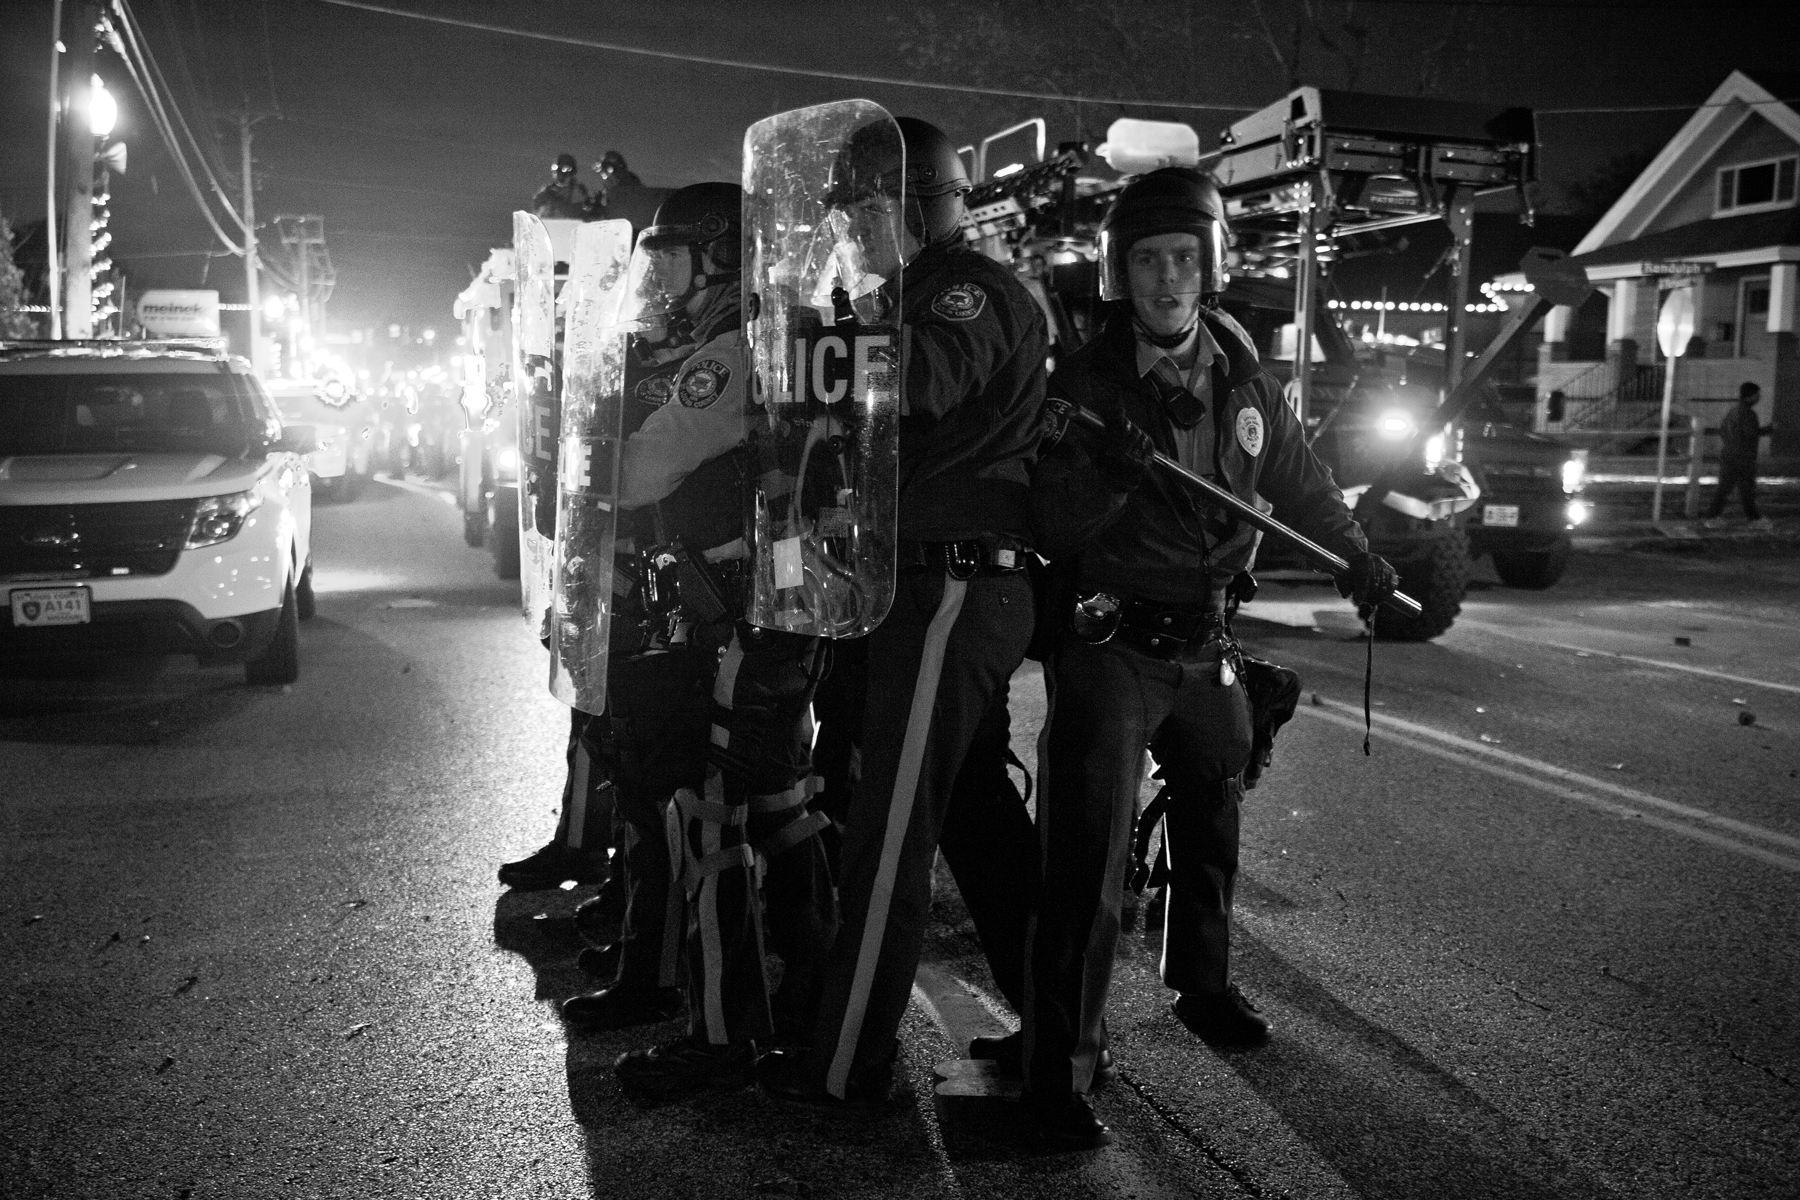 St. Louis County police officers in WHOSE STREETS?, a Magnolia Pictures release. Photo courtesy of Magnolia Pictures